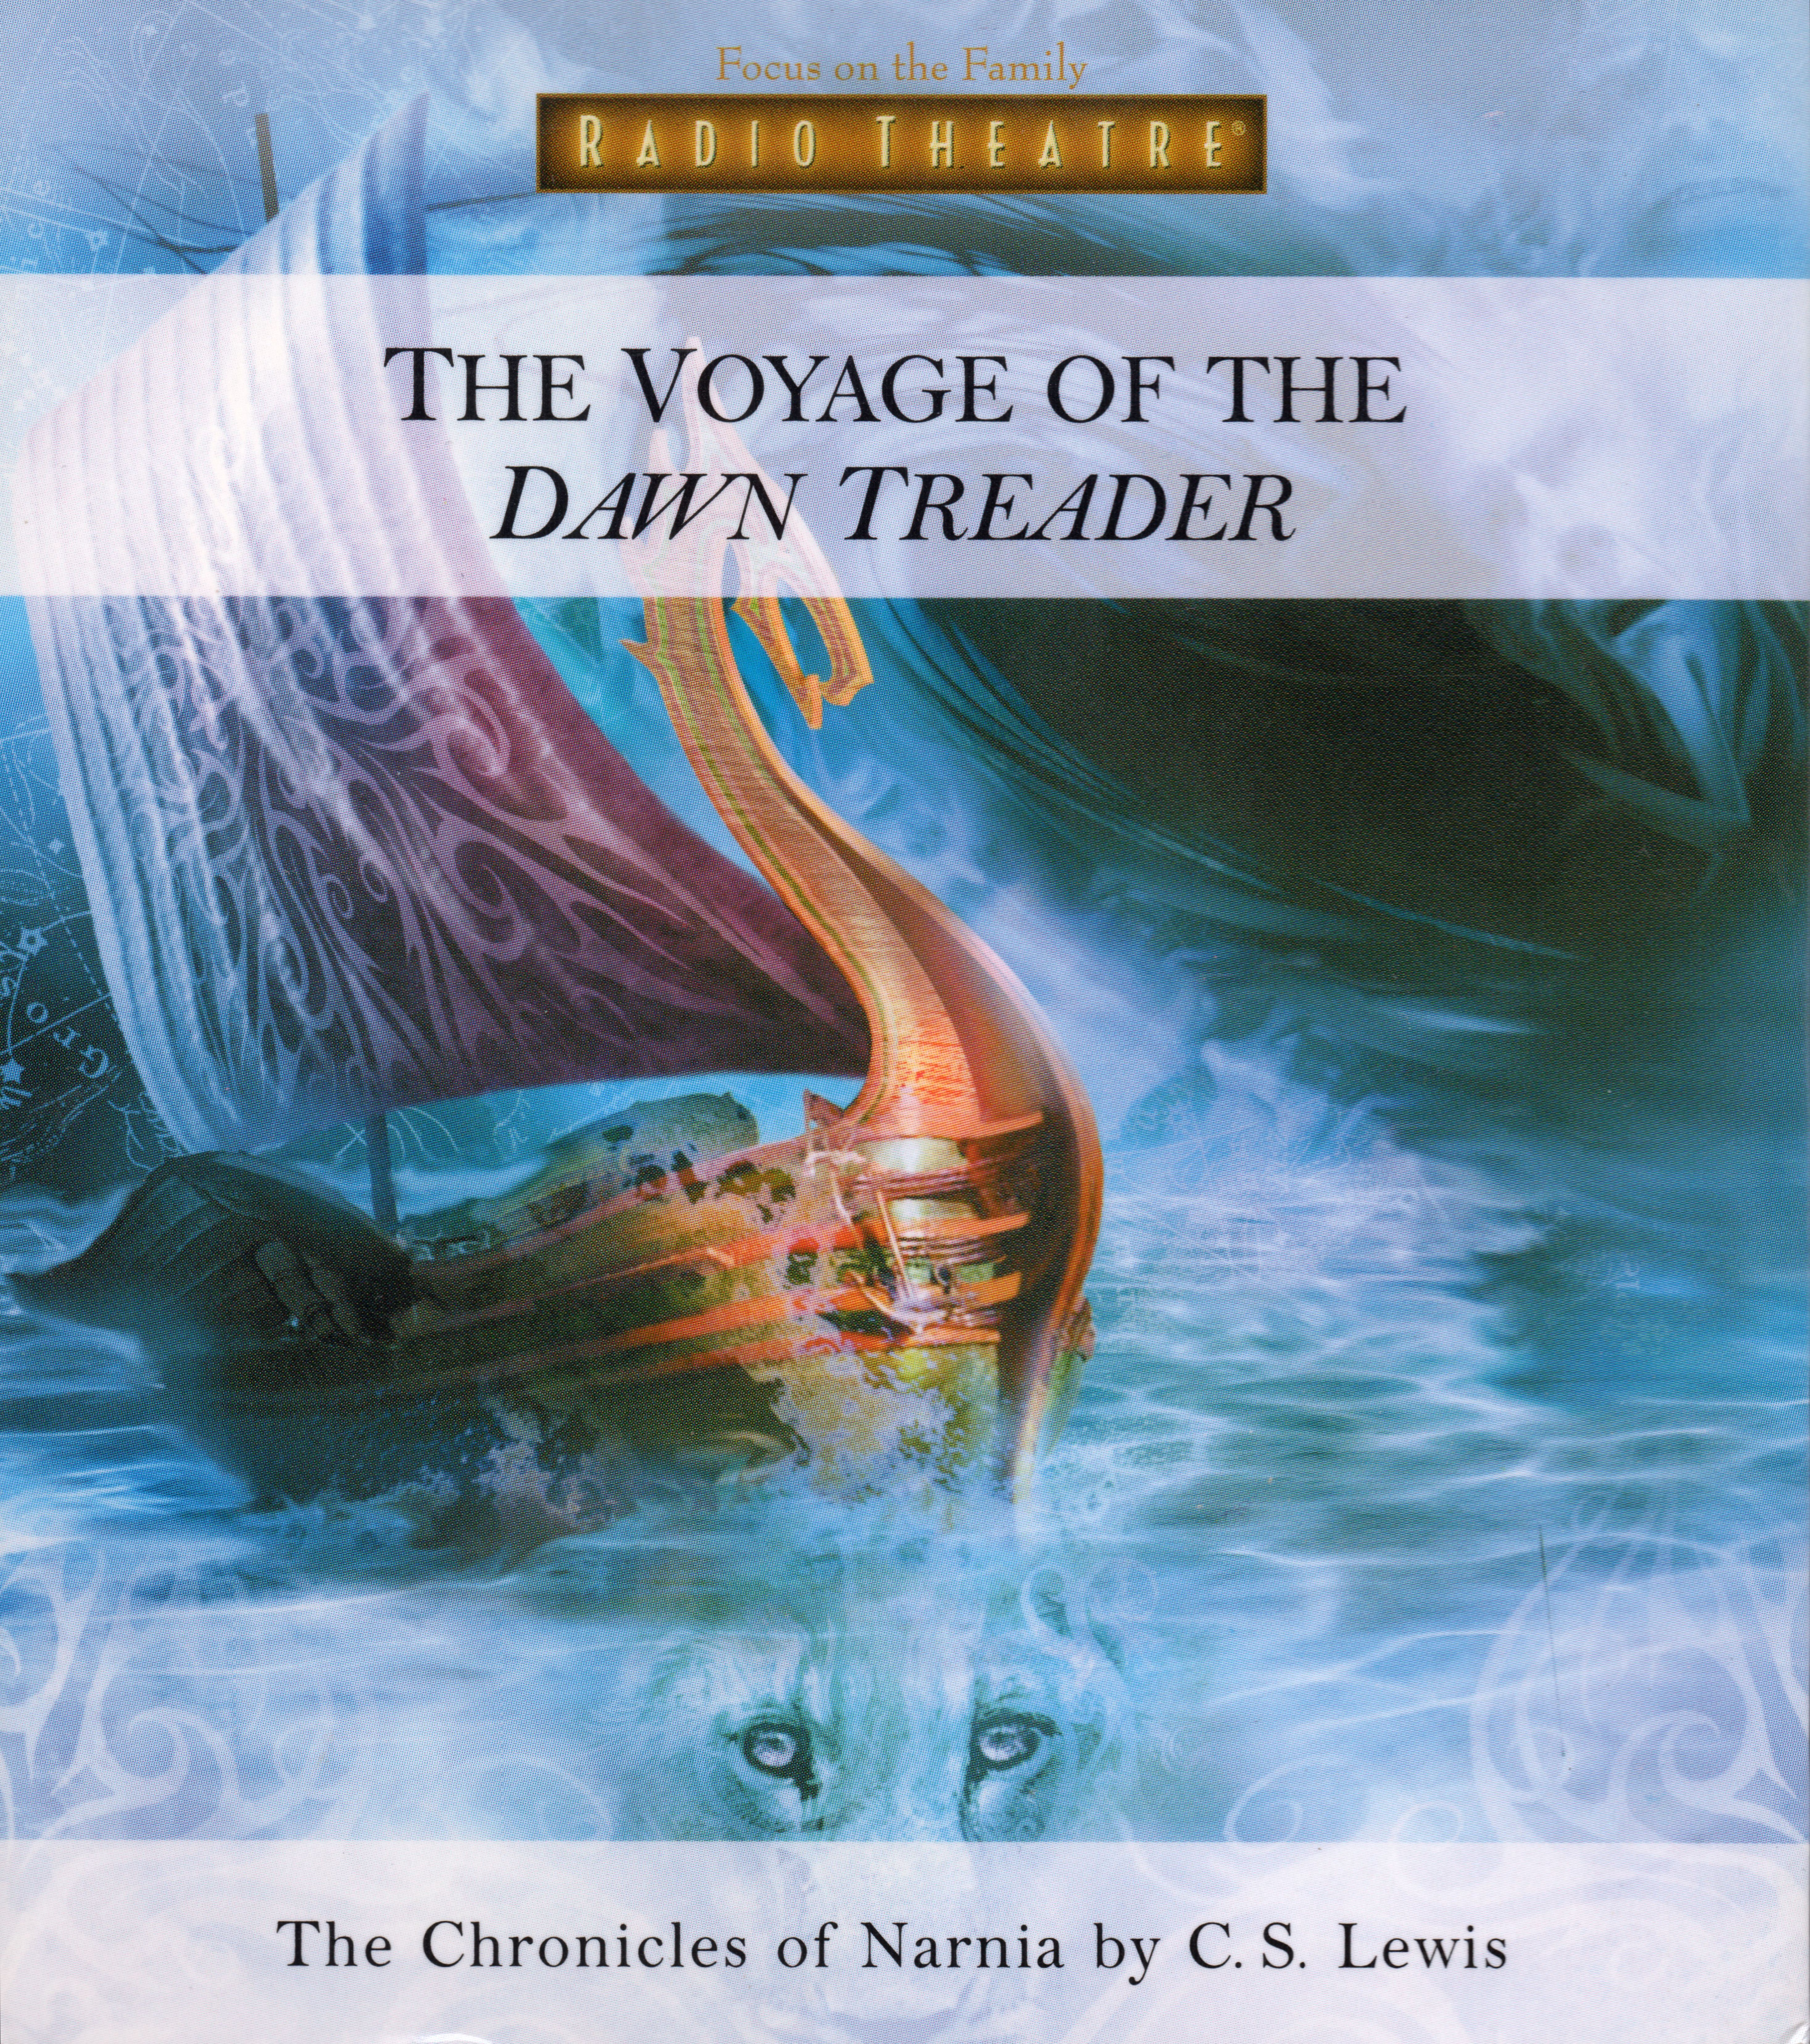 The Voyage of the Dawn Treader (Focus on the Family Radio Theatre)